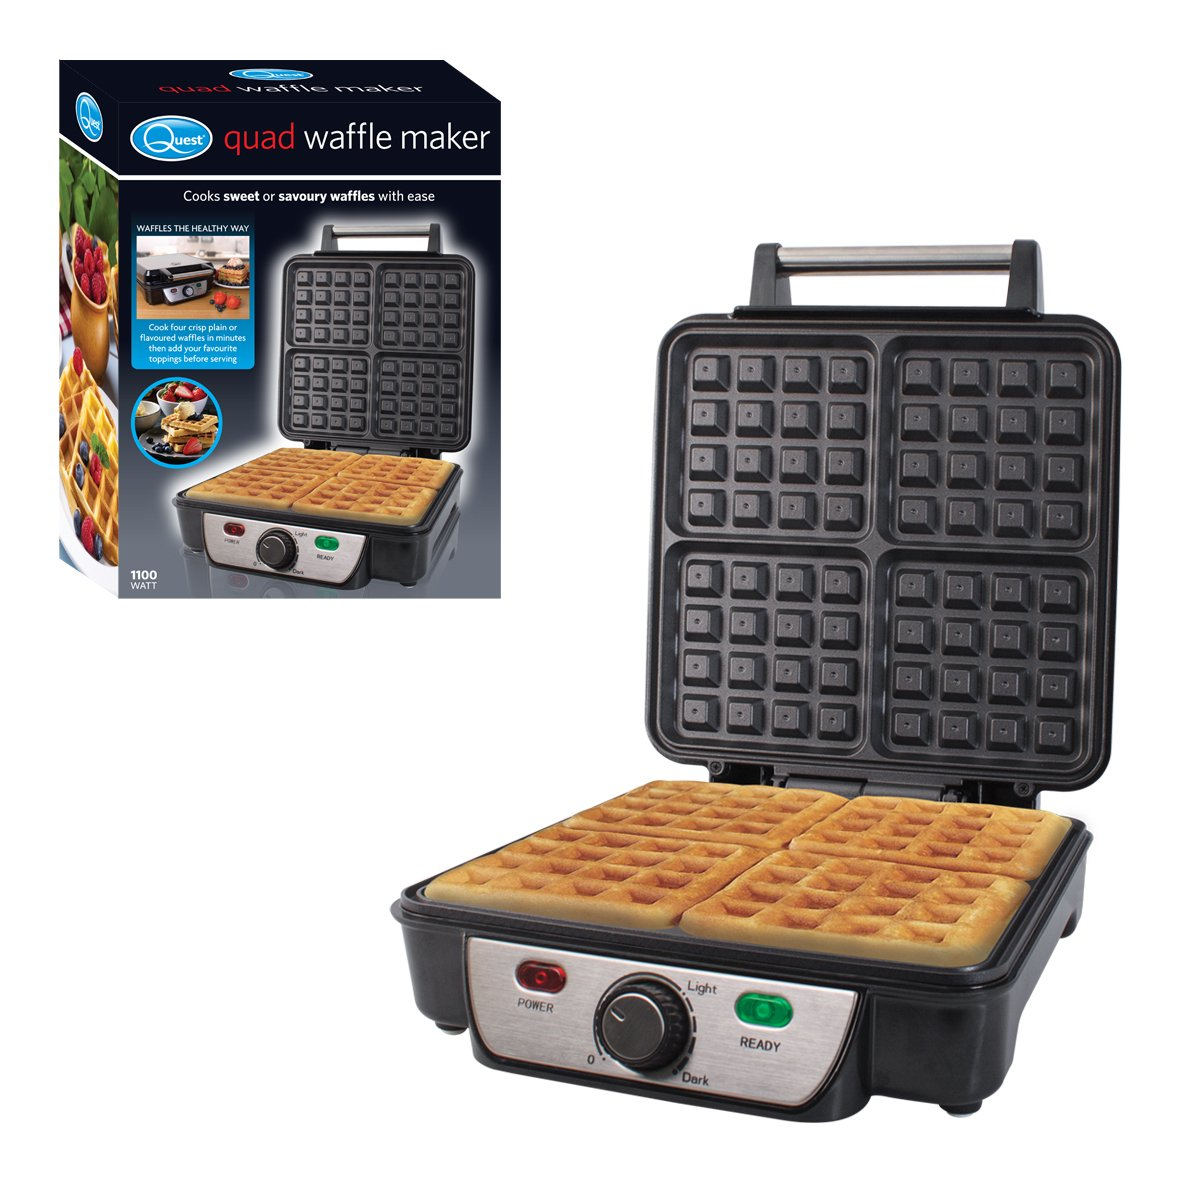 Quest Quad Belgian Waffle Maker 1100W – Compact Design with Non-stick Coating & Automatic Temperature Control, Cooks up to 4 Waffles Benross Group 35940